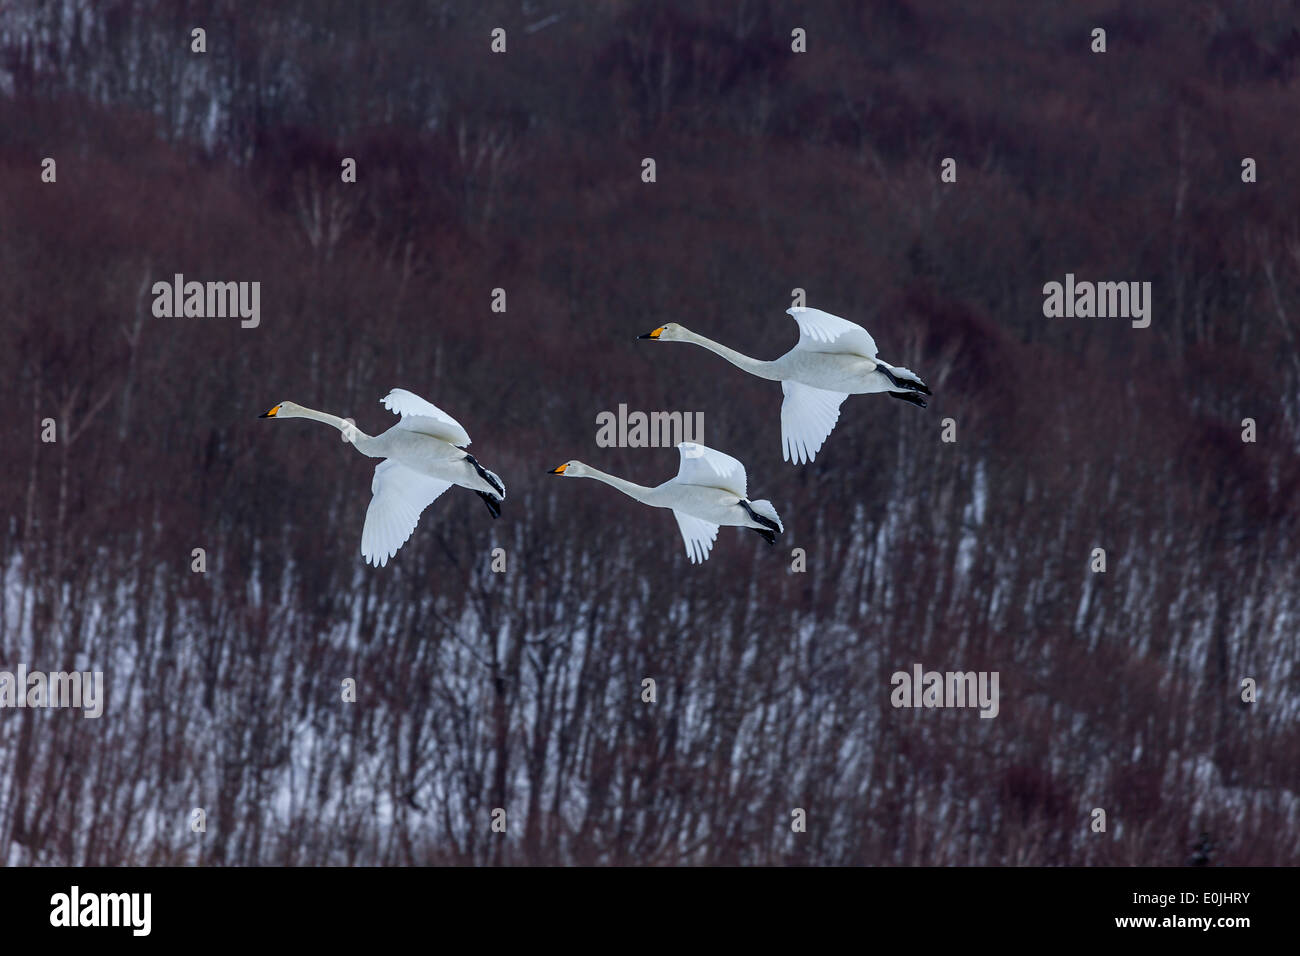 Red crowned cranes flying - Stock Image